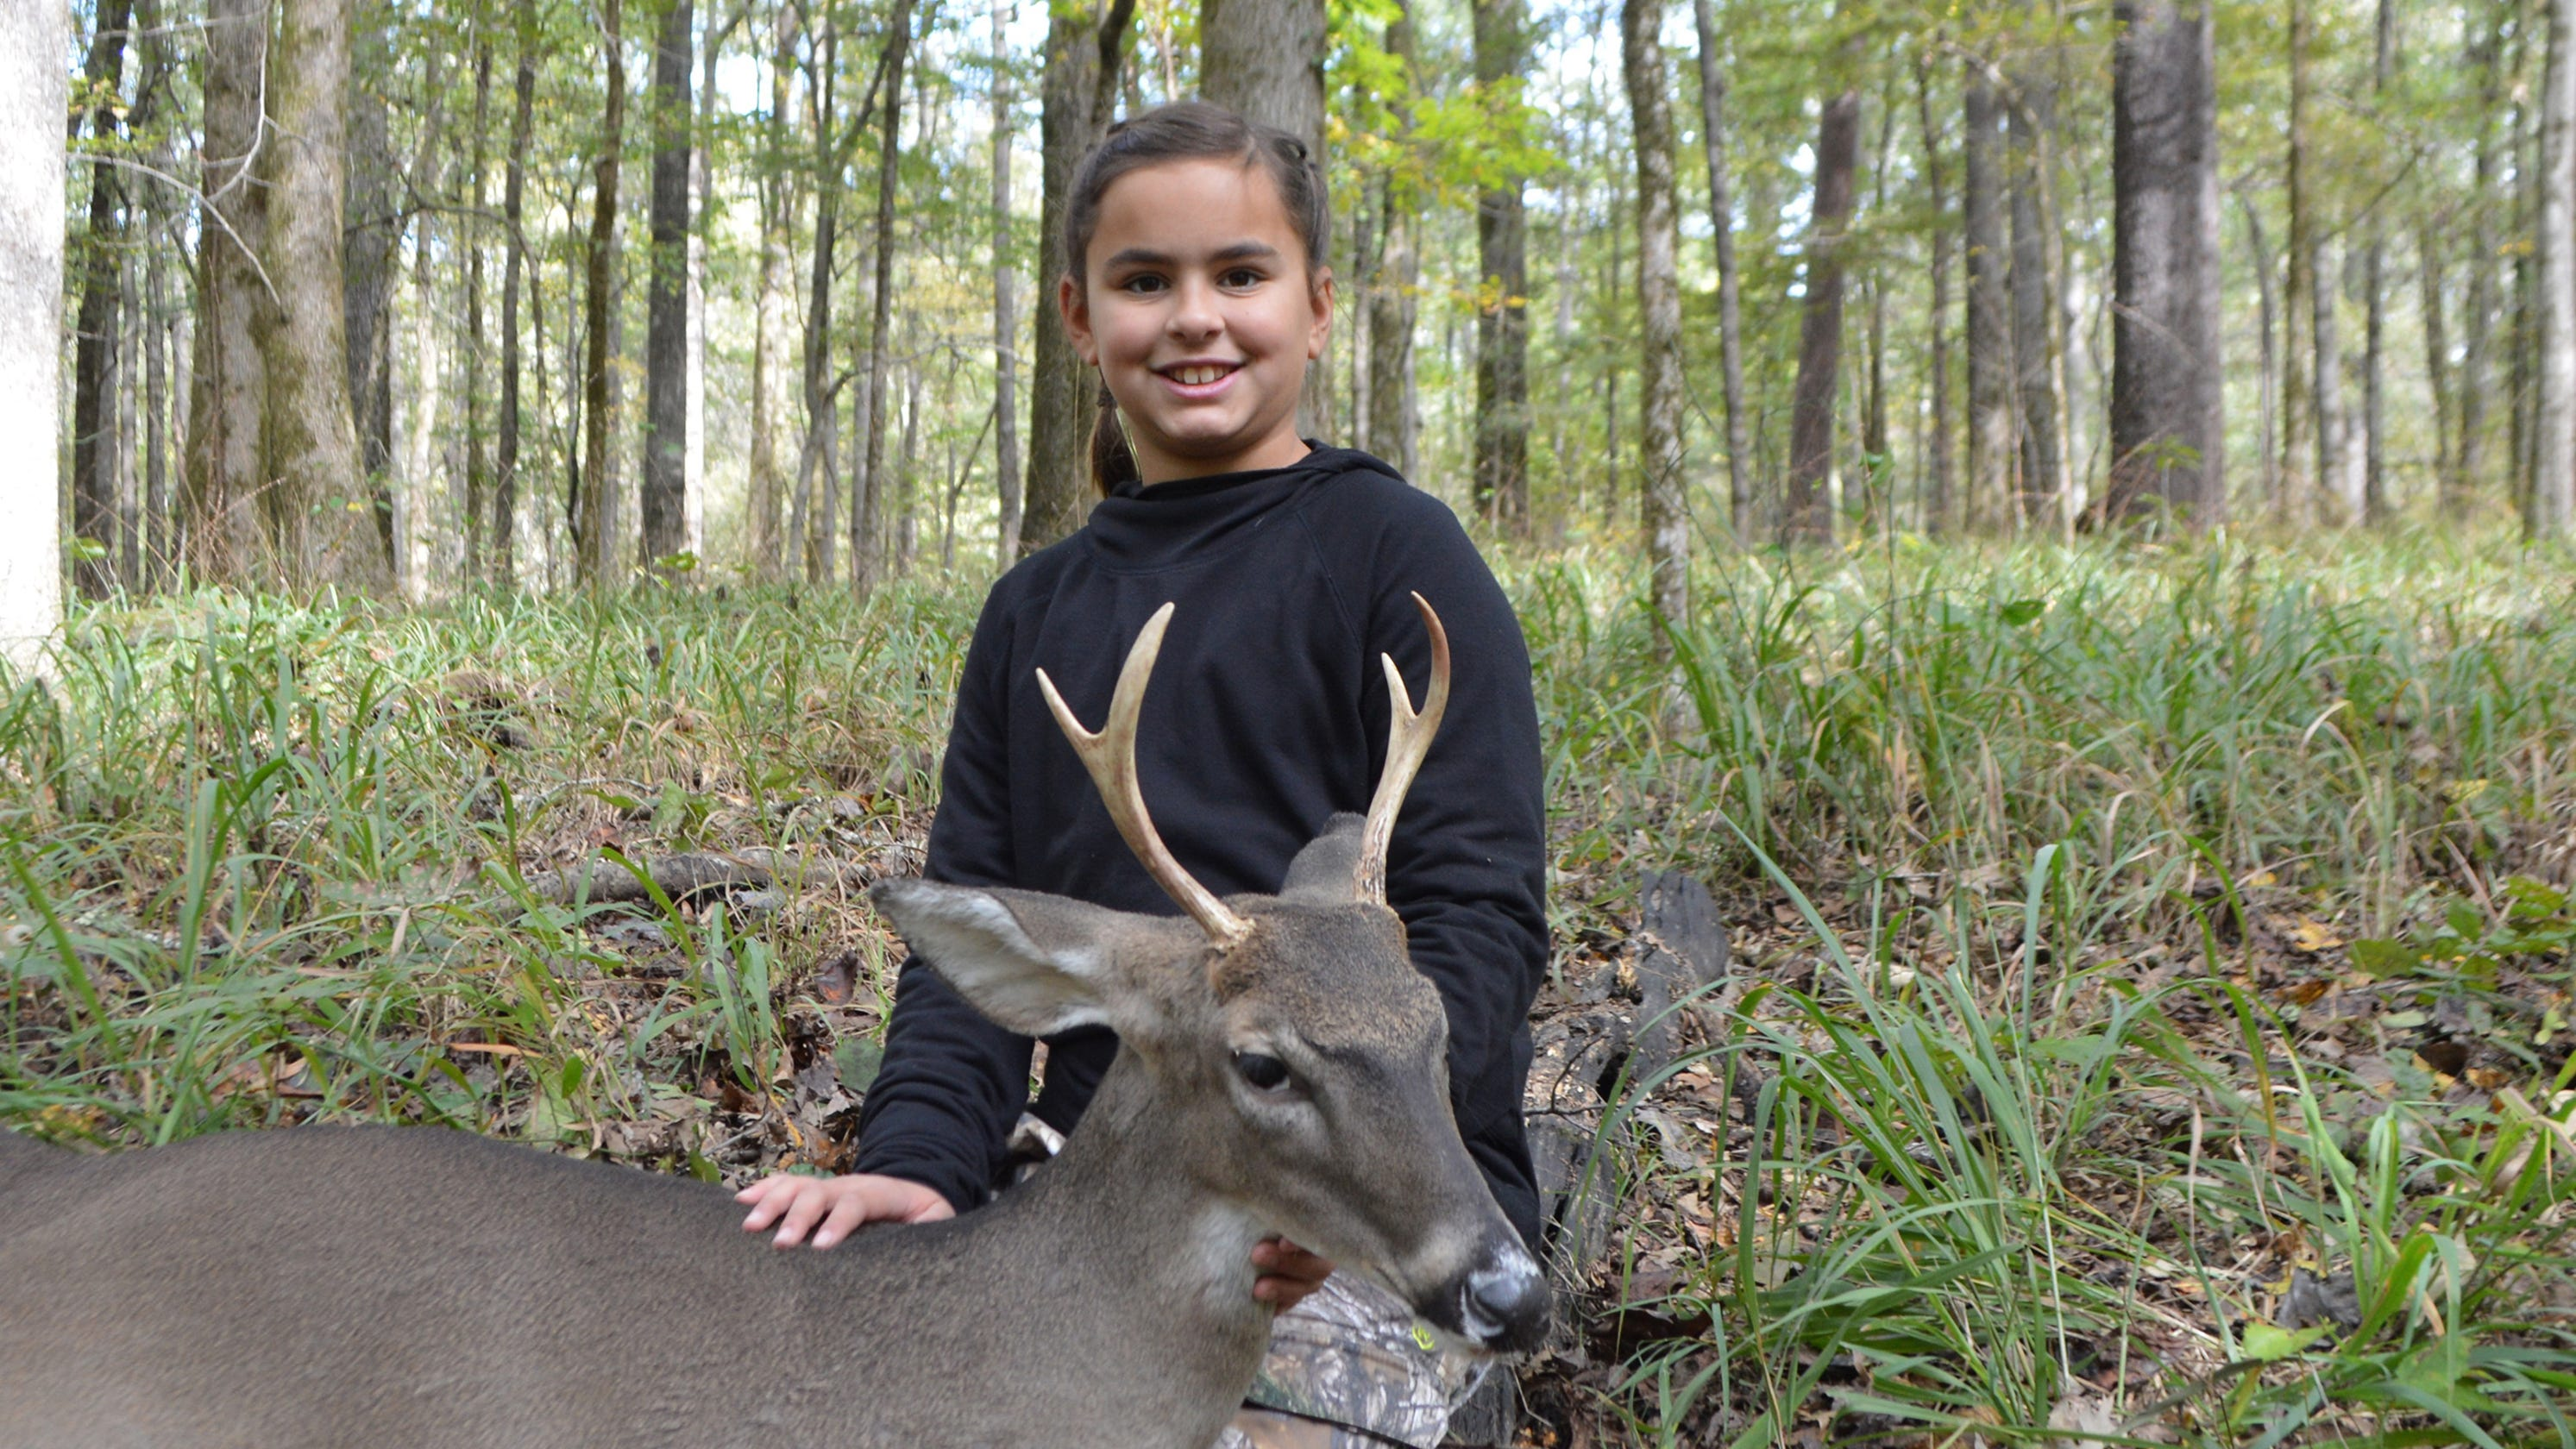 Wildlife department offers group deer hunts with feel of